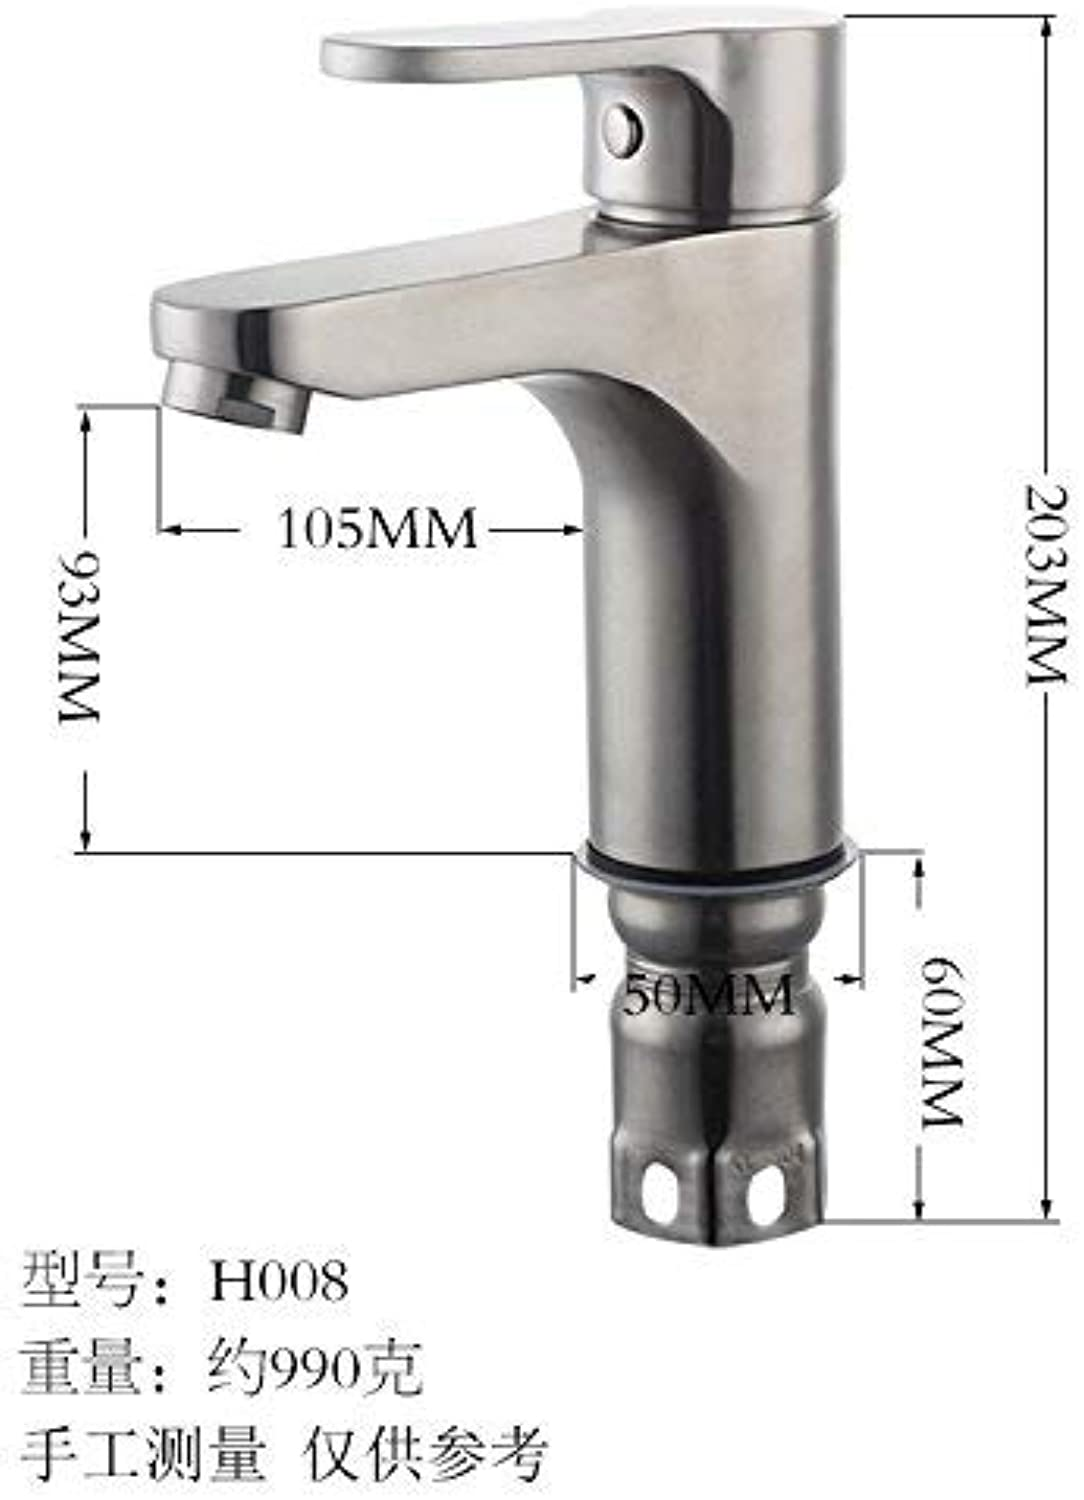 Oudan Basin Mixer Tap Bathroom Sink Faucet Table tub faucet 304 brushed stainless steel basin faucet hot and cold tower bathroom vanity faucet,H010 (color   H008)